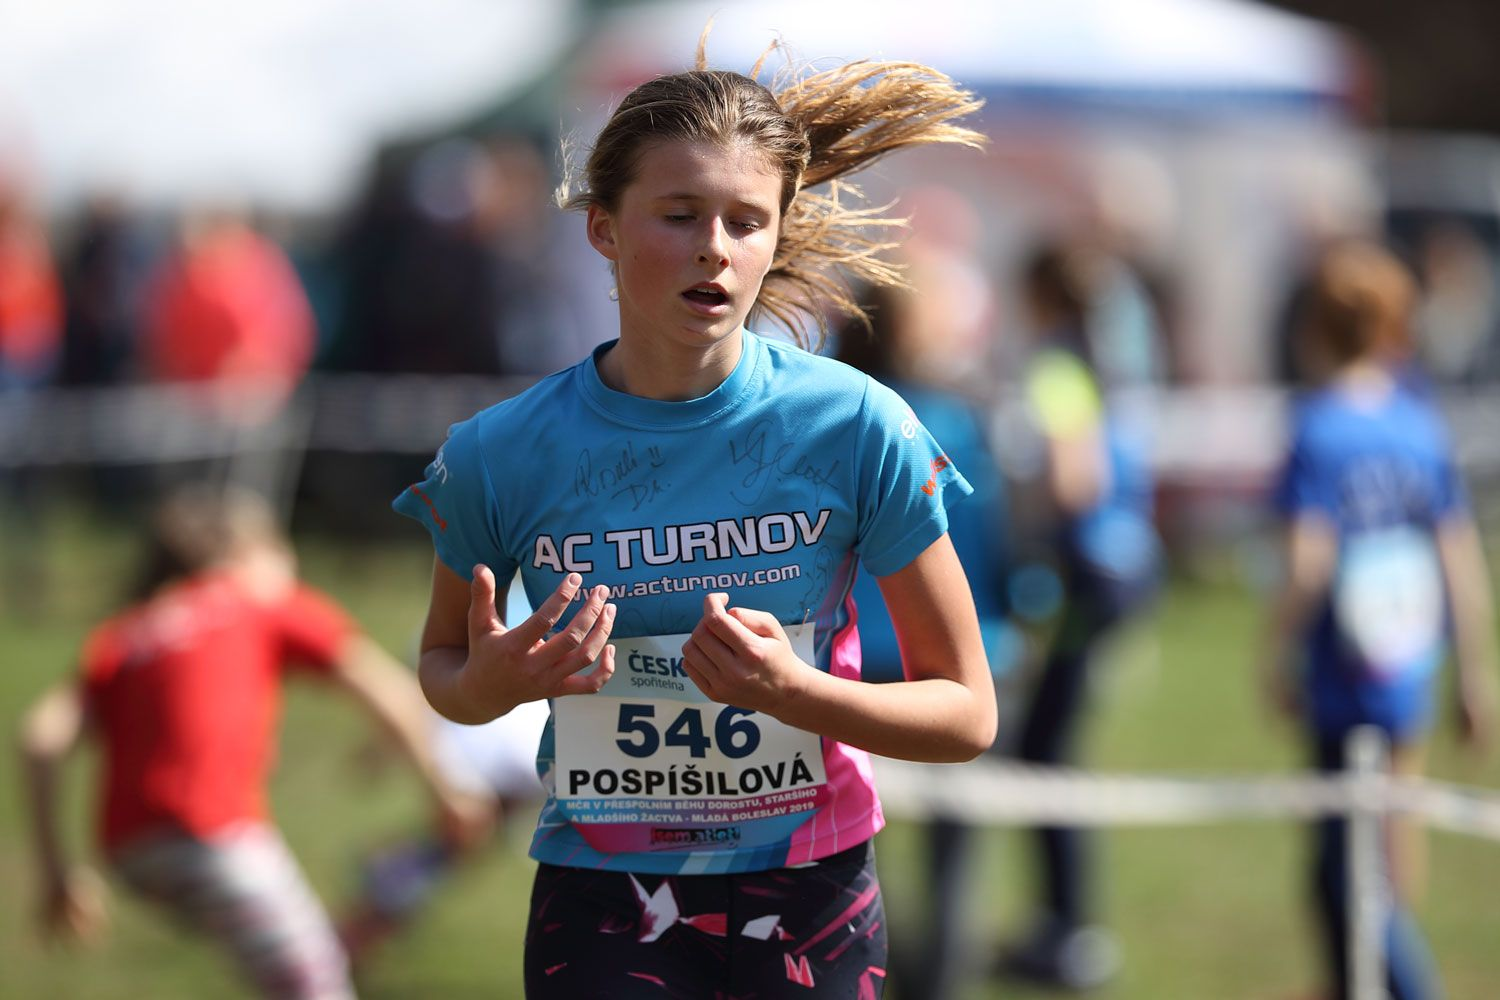 CZ Chamionship Cross Country Mlada Boleslav 21